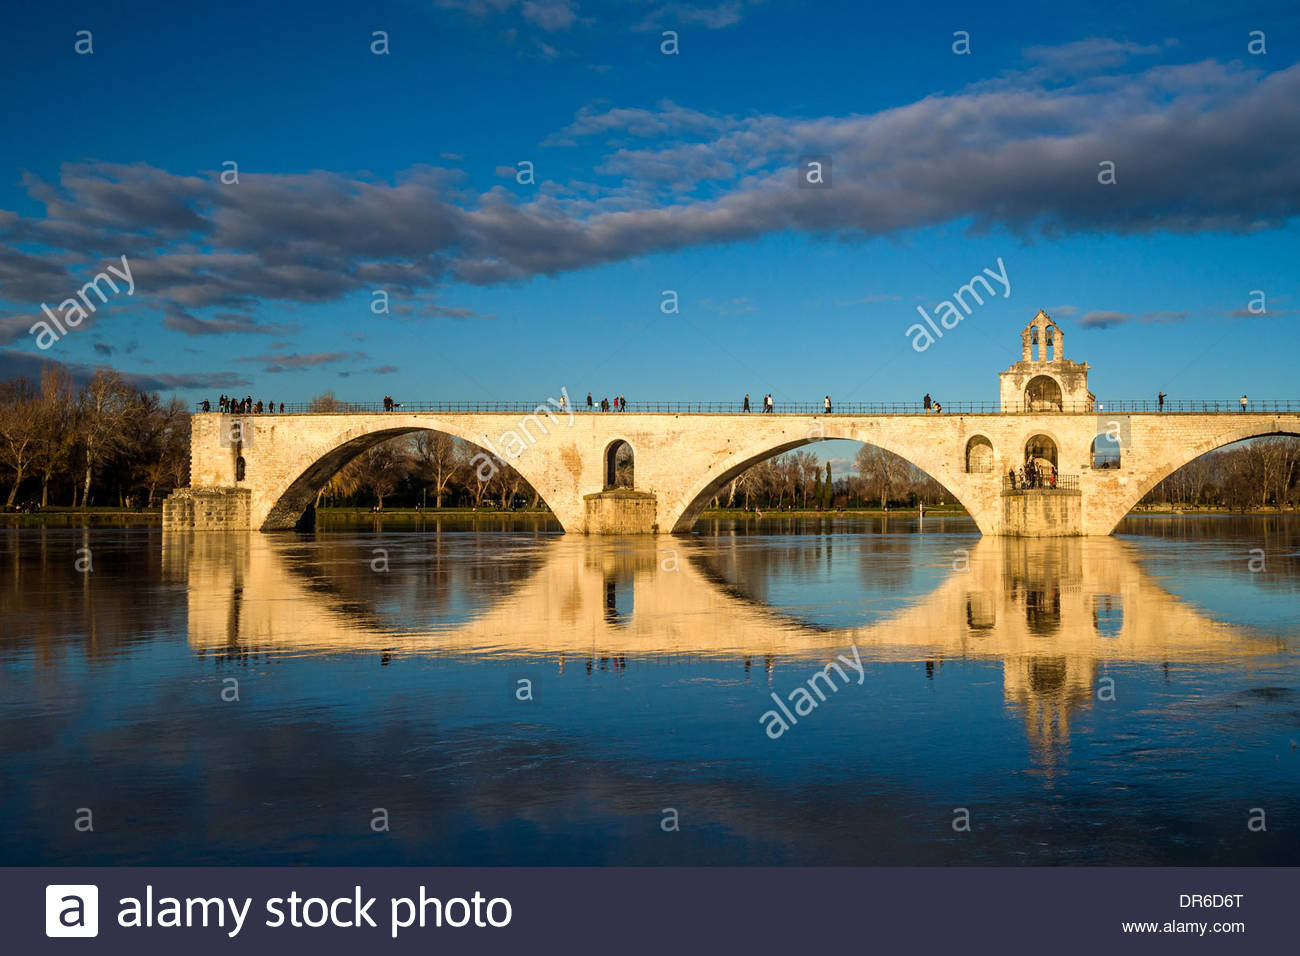 Pont Saint Benezet (known as the Pont d'Avignon) on the River Rhone - Avignon - France - Stock Image